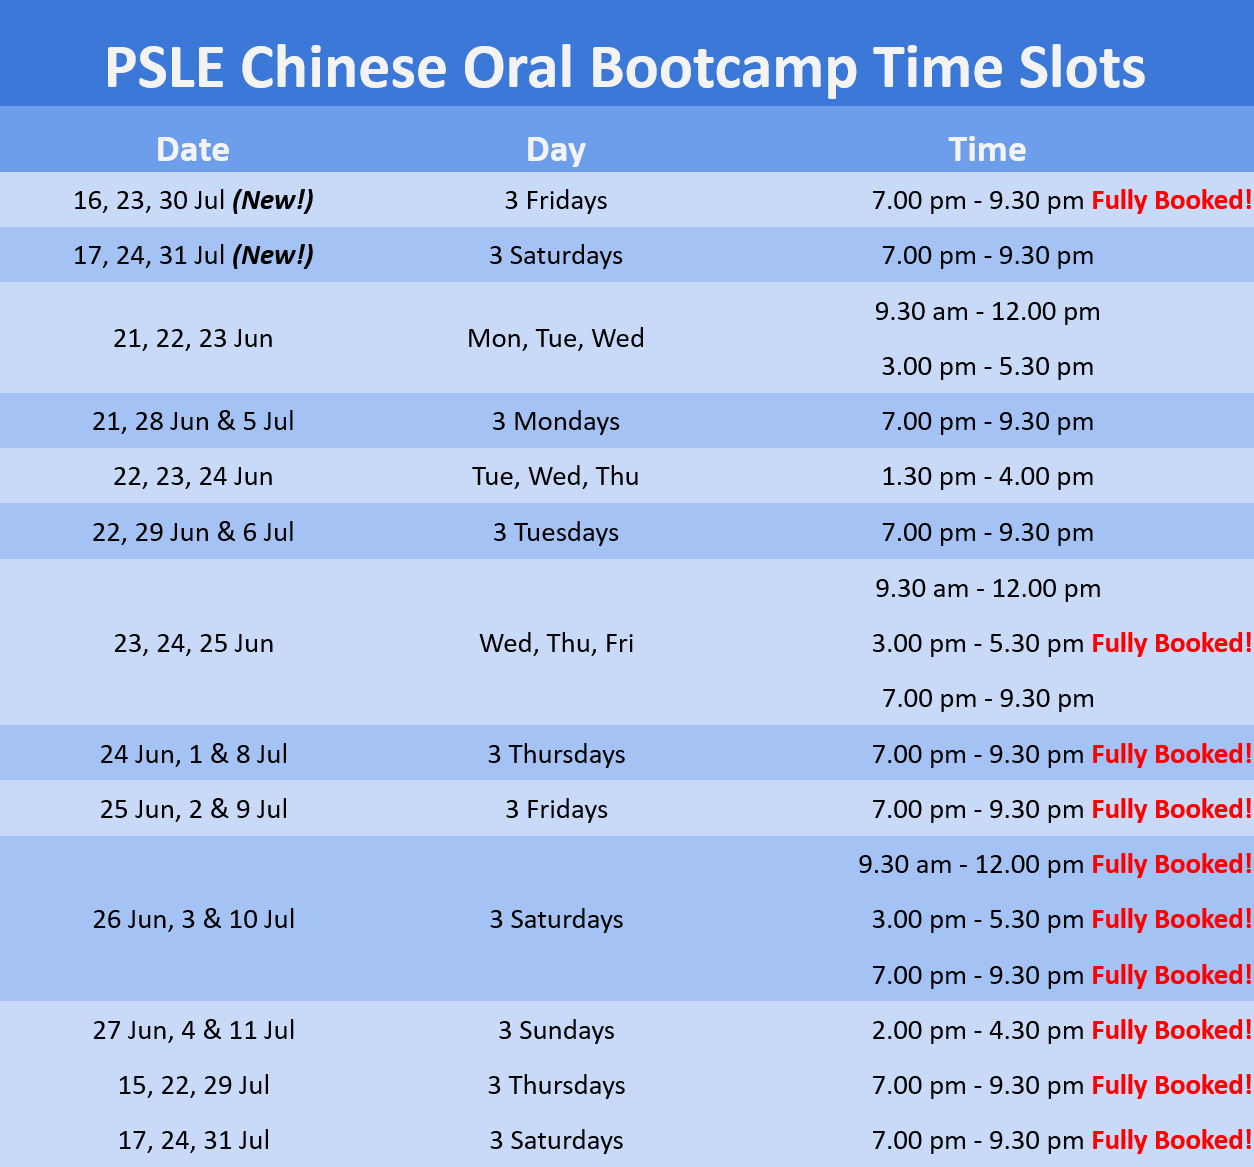 PSLE Chinese Oral Bootcamp (Mind Stretcher) timing